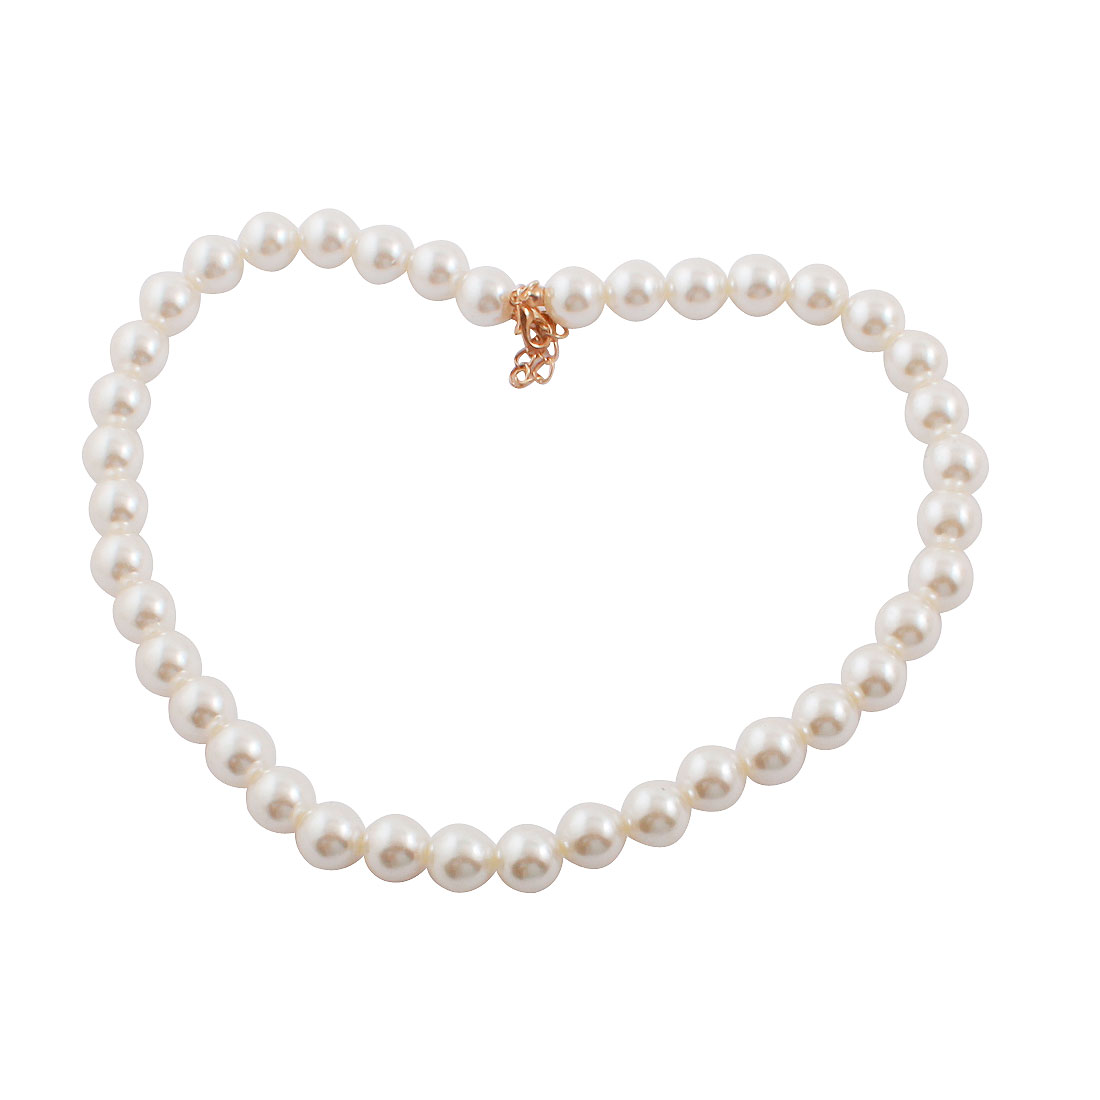 White 12mm Dia Imitation Pearl Chain Neck Decoration Necklace for Ladies